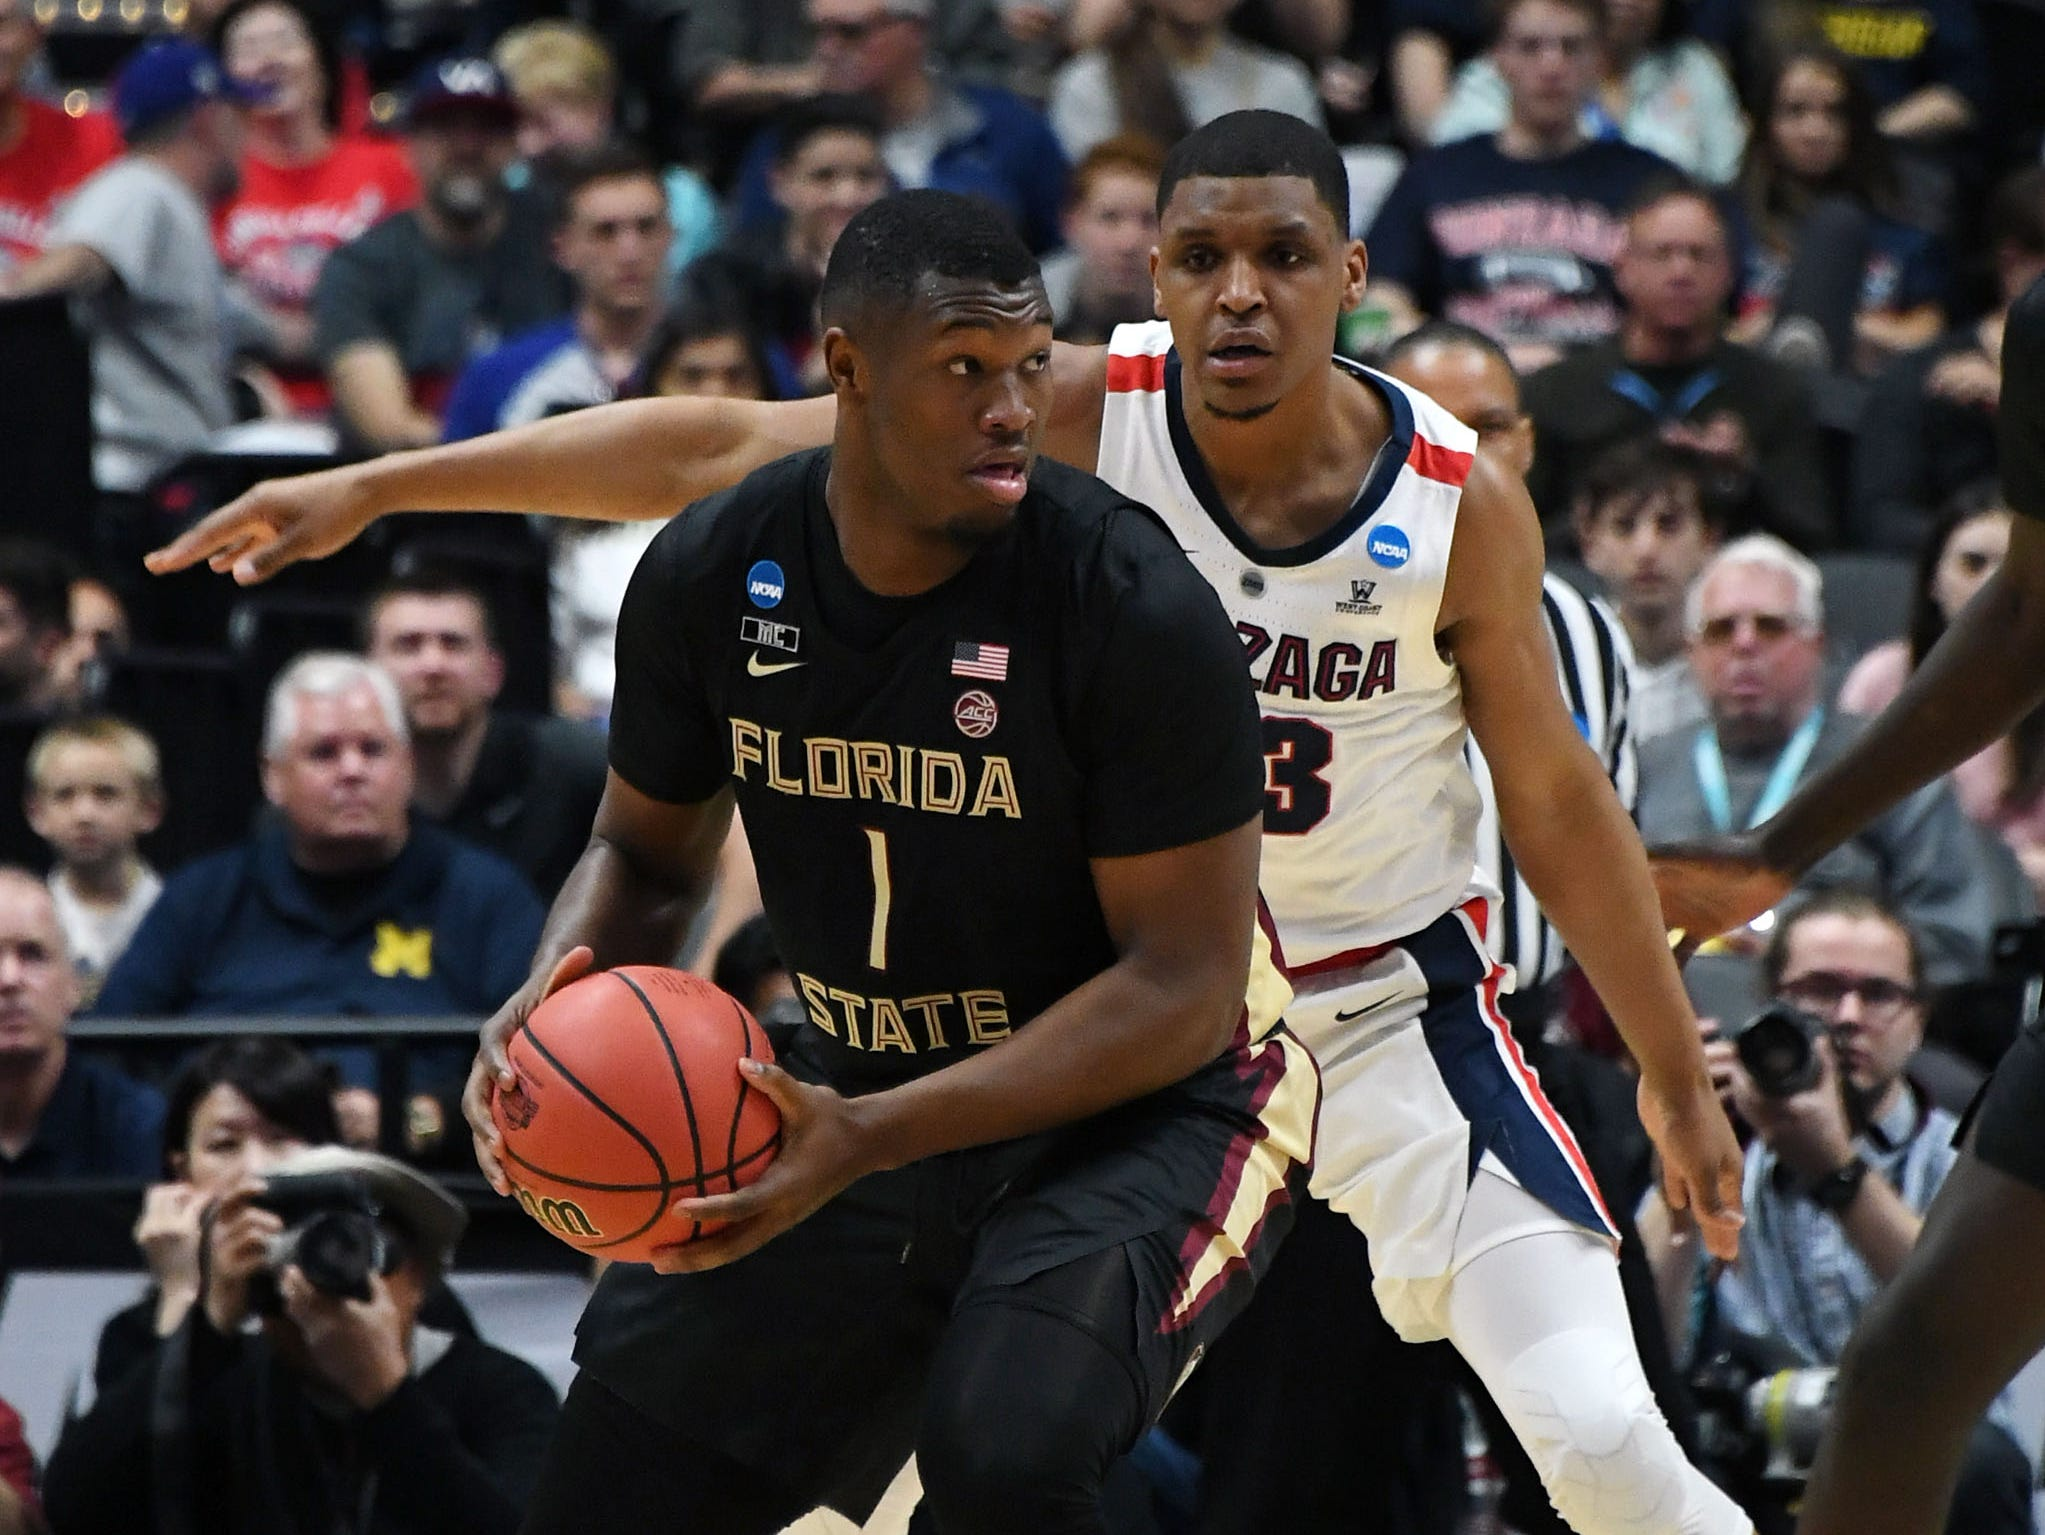 March 28, 2019; Anaheim, CA, USA; Florida State Seminoles forward Raiquan Gray (1) moves the ball against Gonzaga Bulldogs guard Zach Norvell Jr. (23)during the first half in the semifinals of the west regional of the 2019 NCAA Tournament at Honda Center. Mandatory Credit: Richard Mackson-USA TODAY Sports